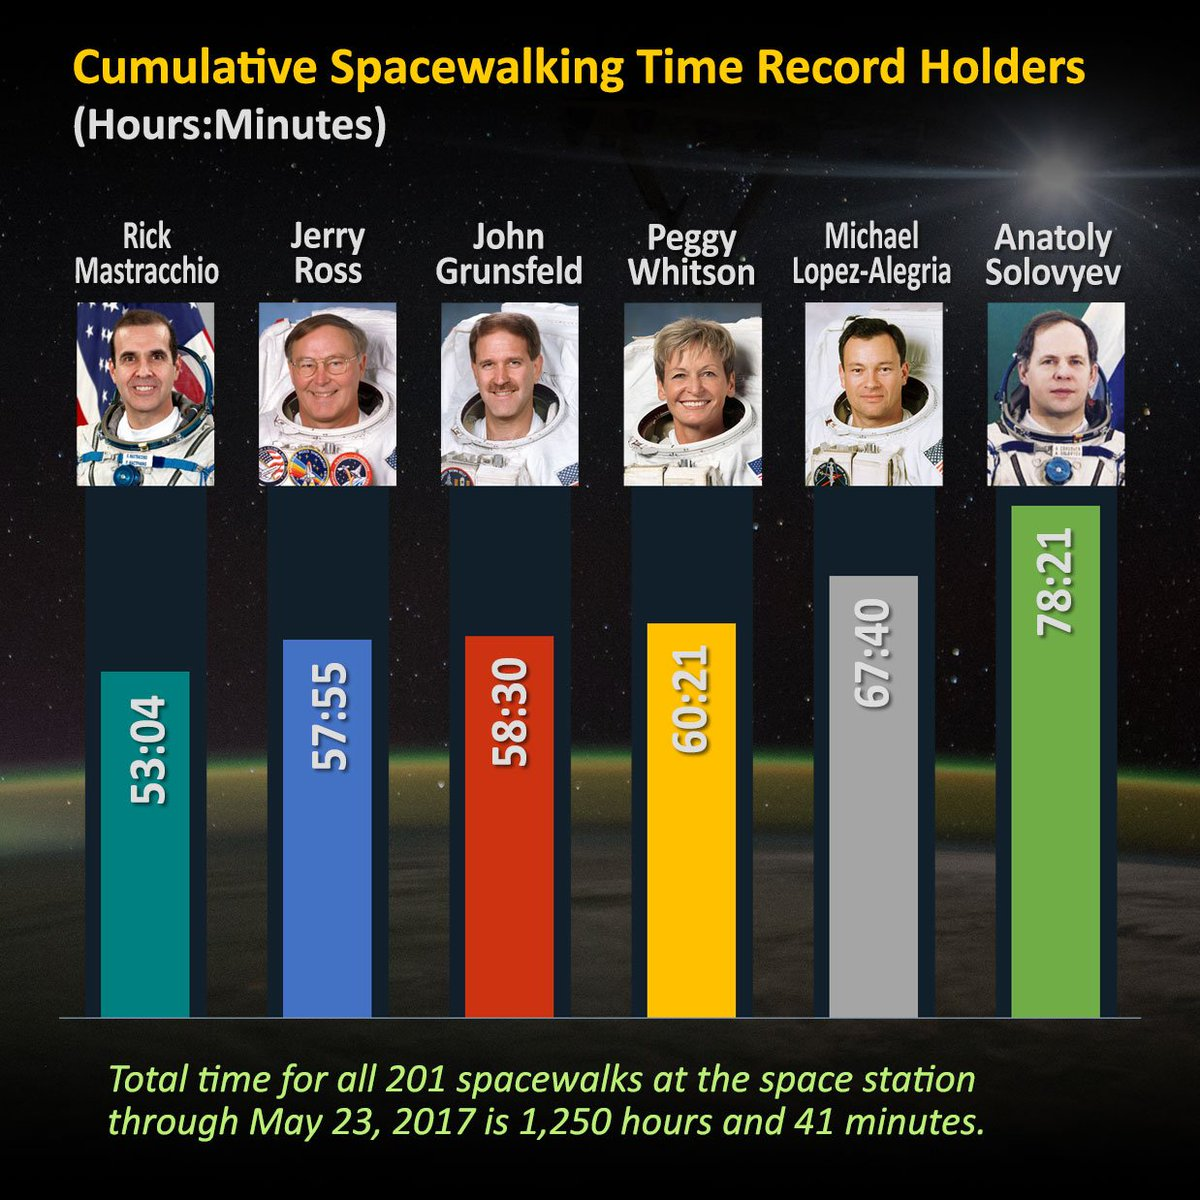 .@AstroPeggy is 3rd place all-time for cumulative spacewalk time with 10 spacewalks totaling 60 hours, 21 minutes. https://t.co/ovJuuFaDPn